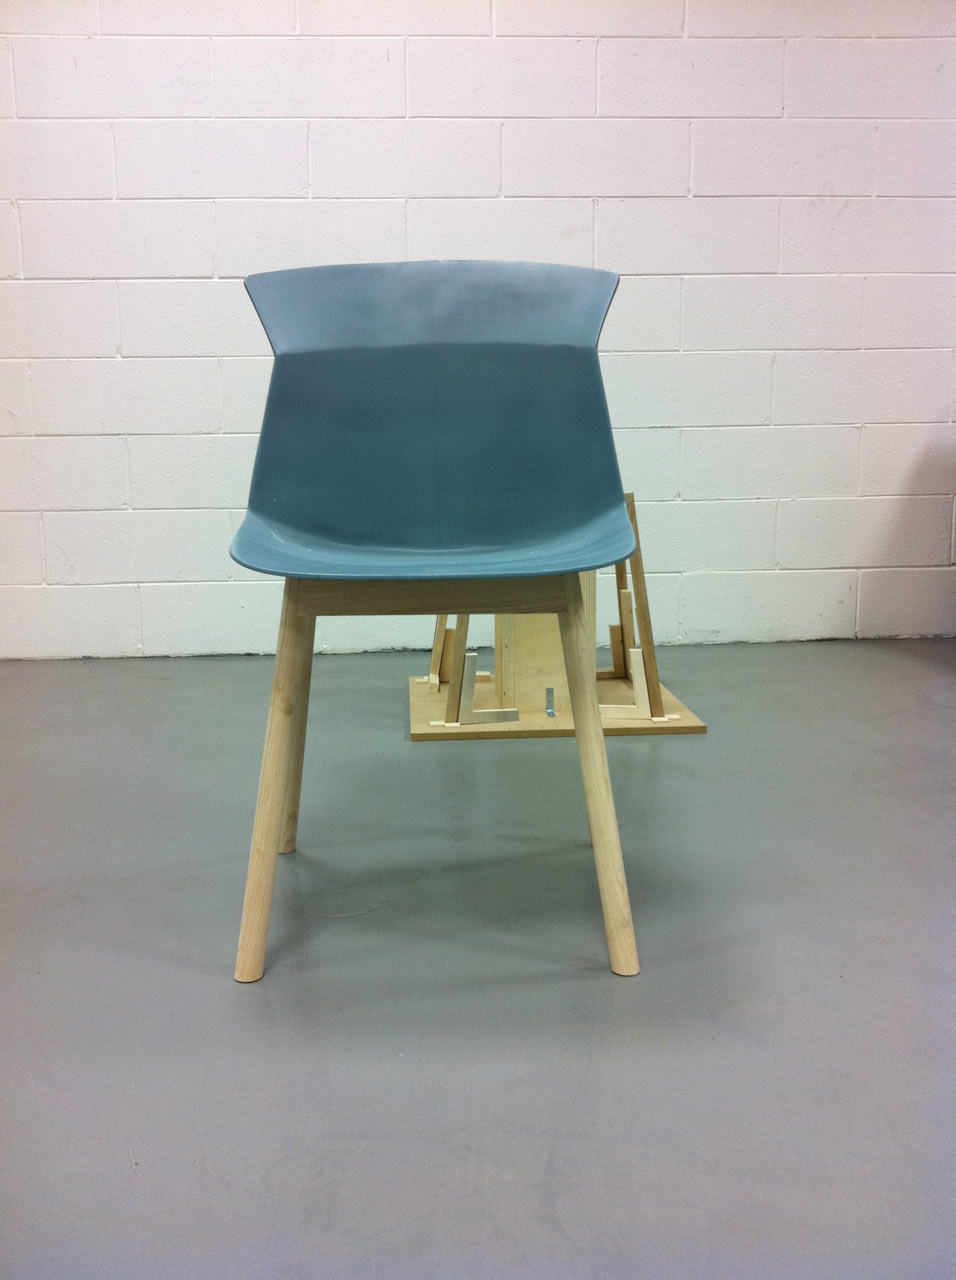 Decon-Motek-Chair-CASSINA-Luca-Nichetto-14-proto